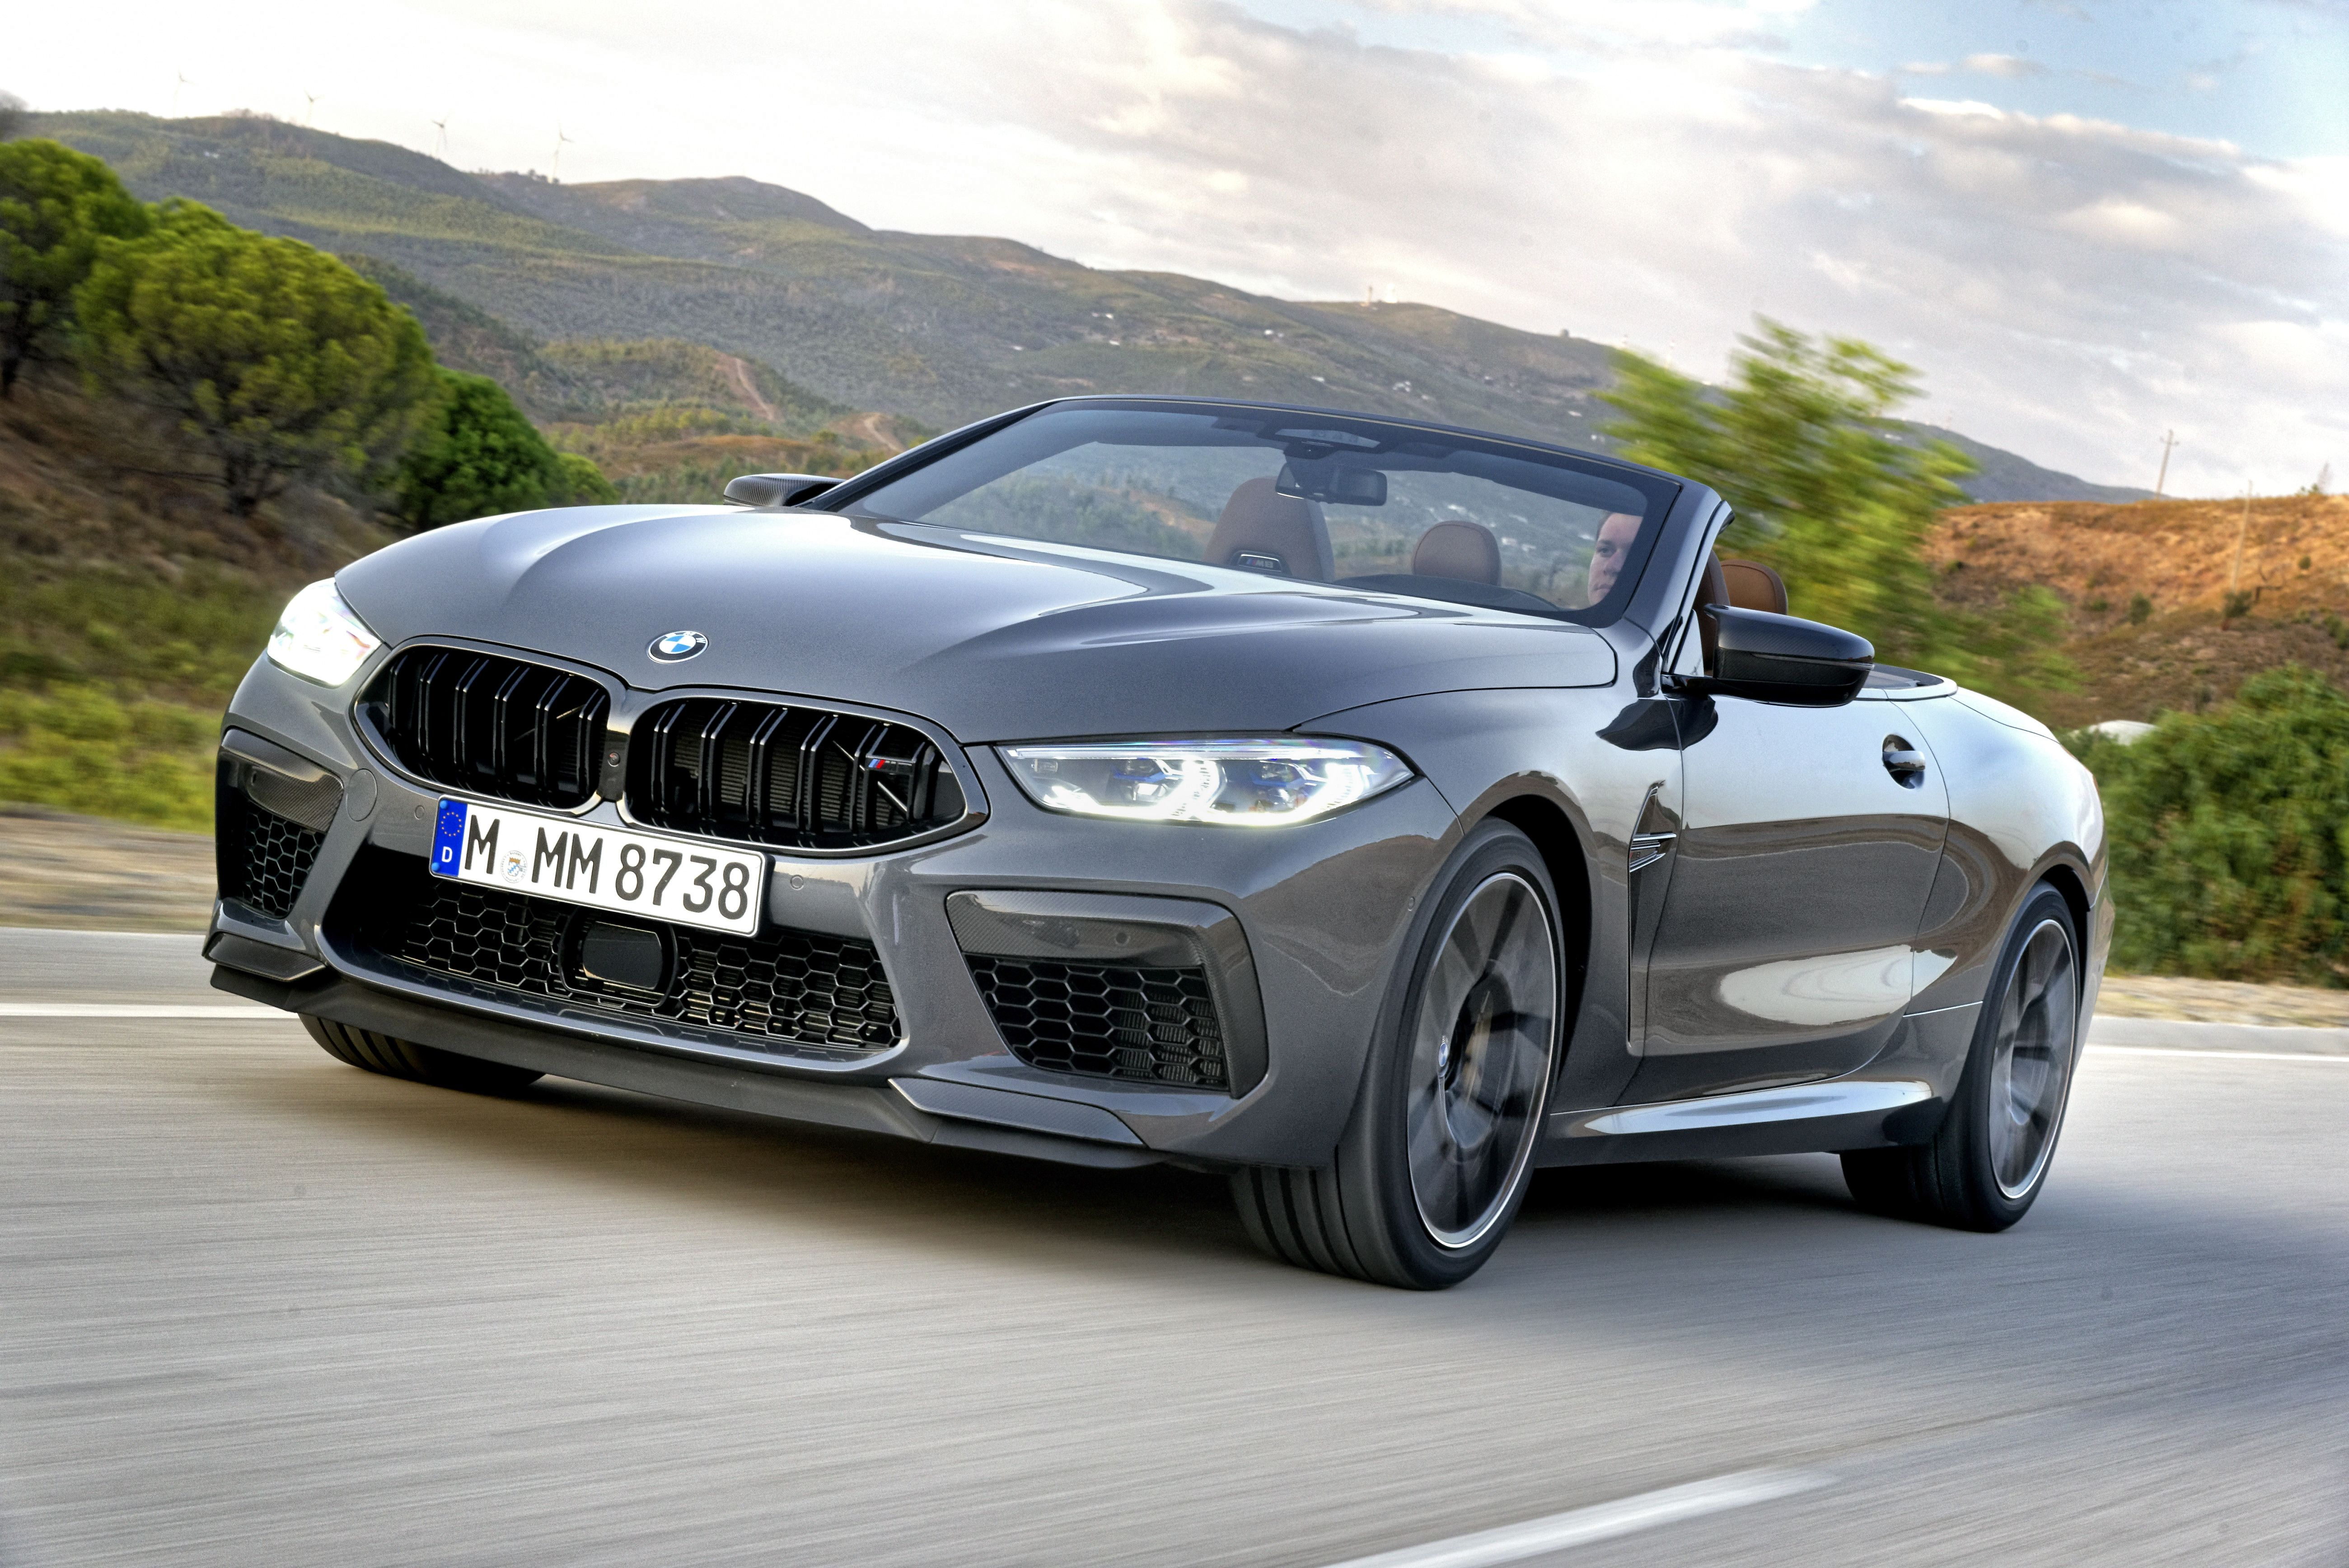 Pin By Simona Kucerova On Auta In 2020 Bmw Convertible New Bmw